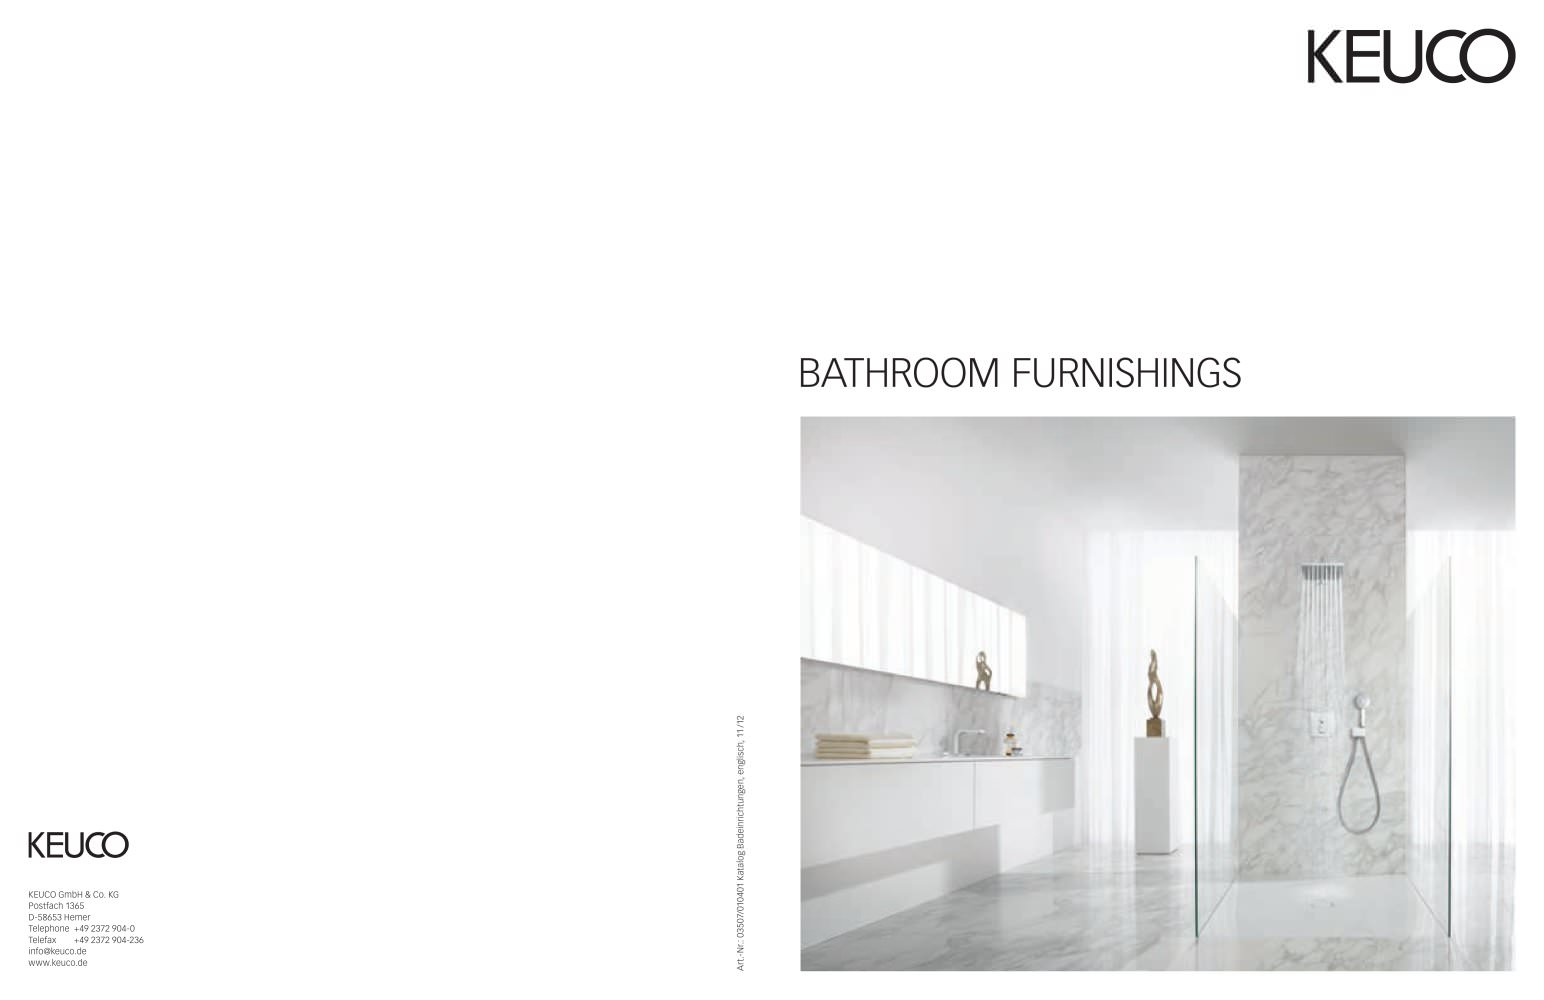 Keuco Hemer keuco bathroom furnishings keuco pdf catalogues documentation